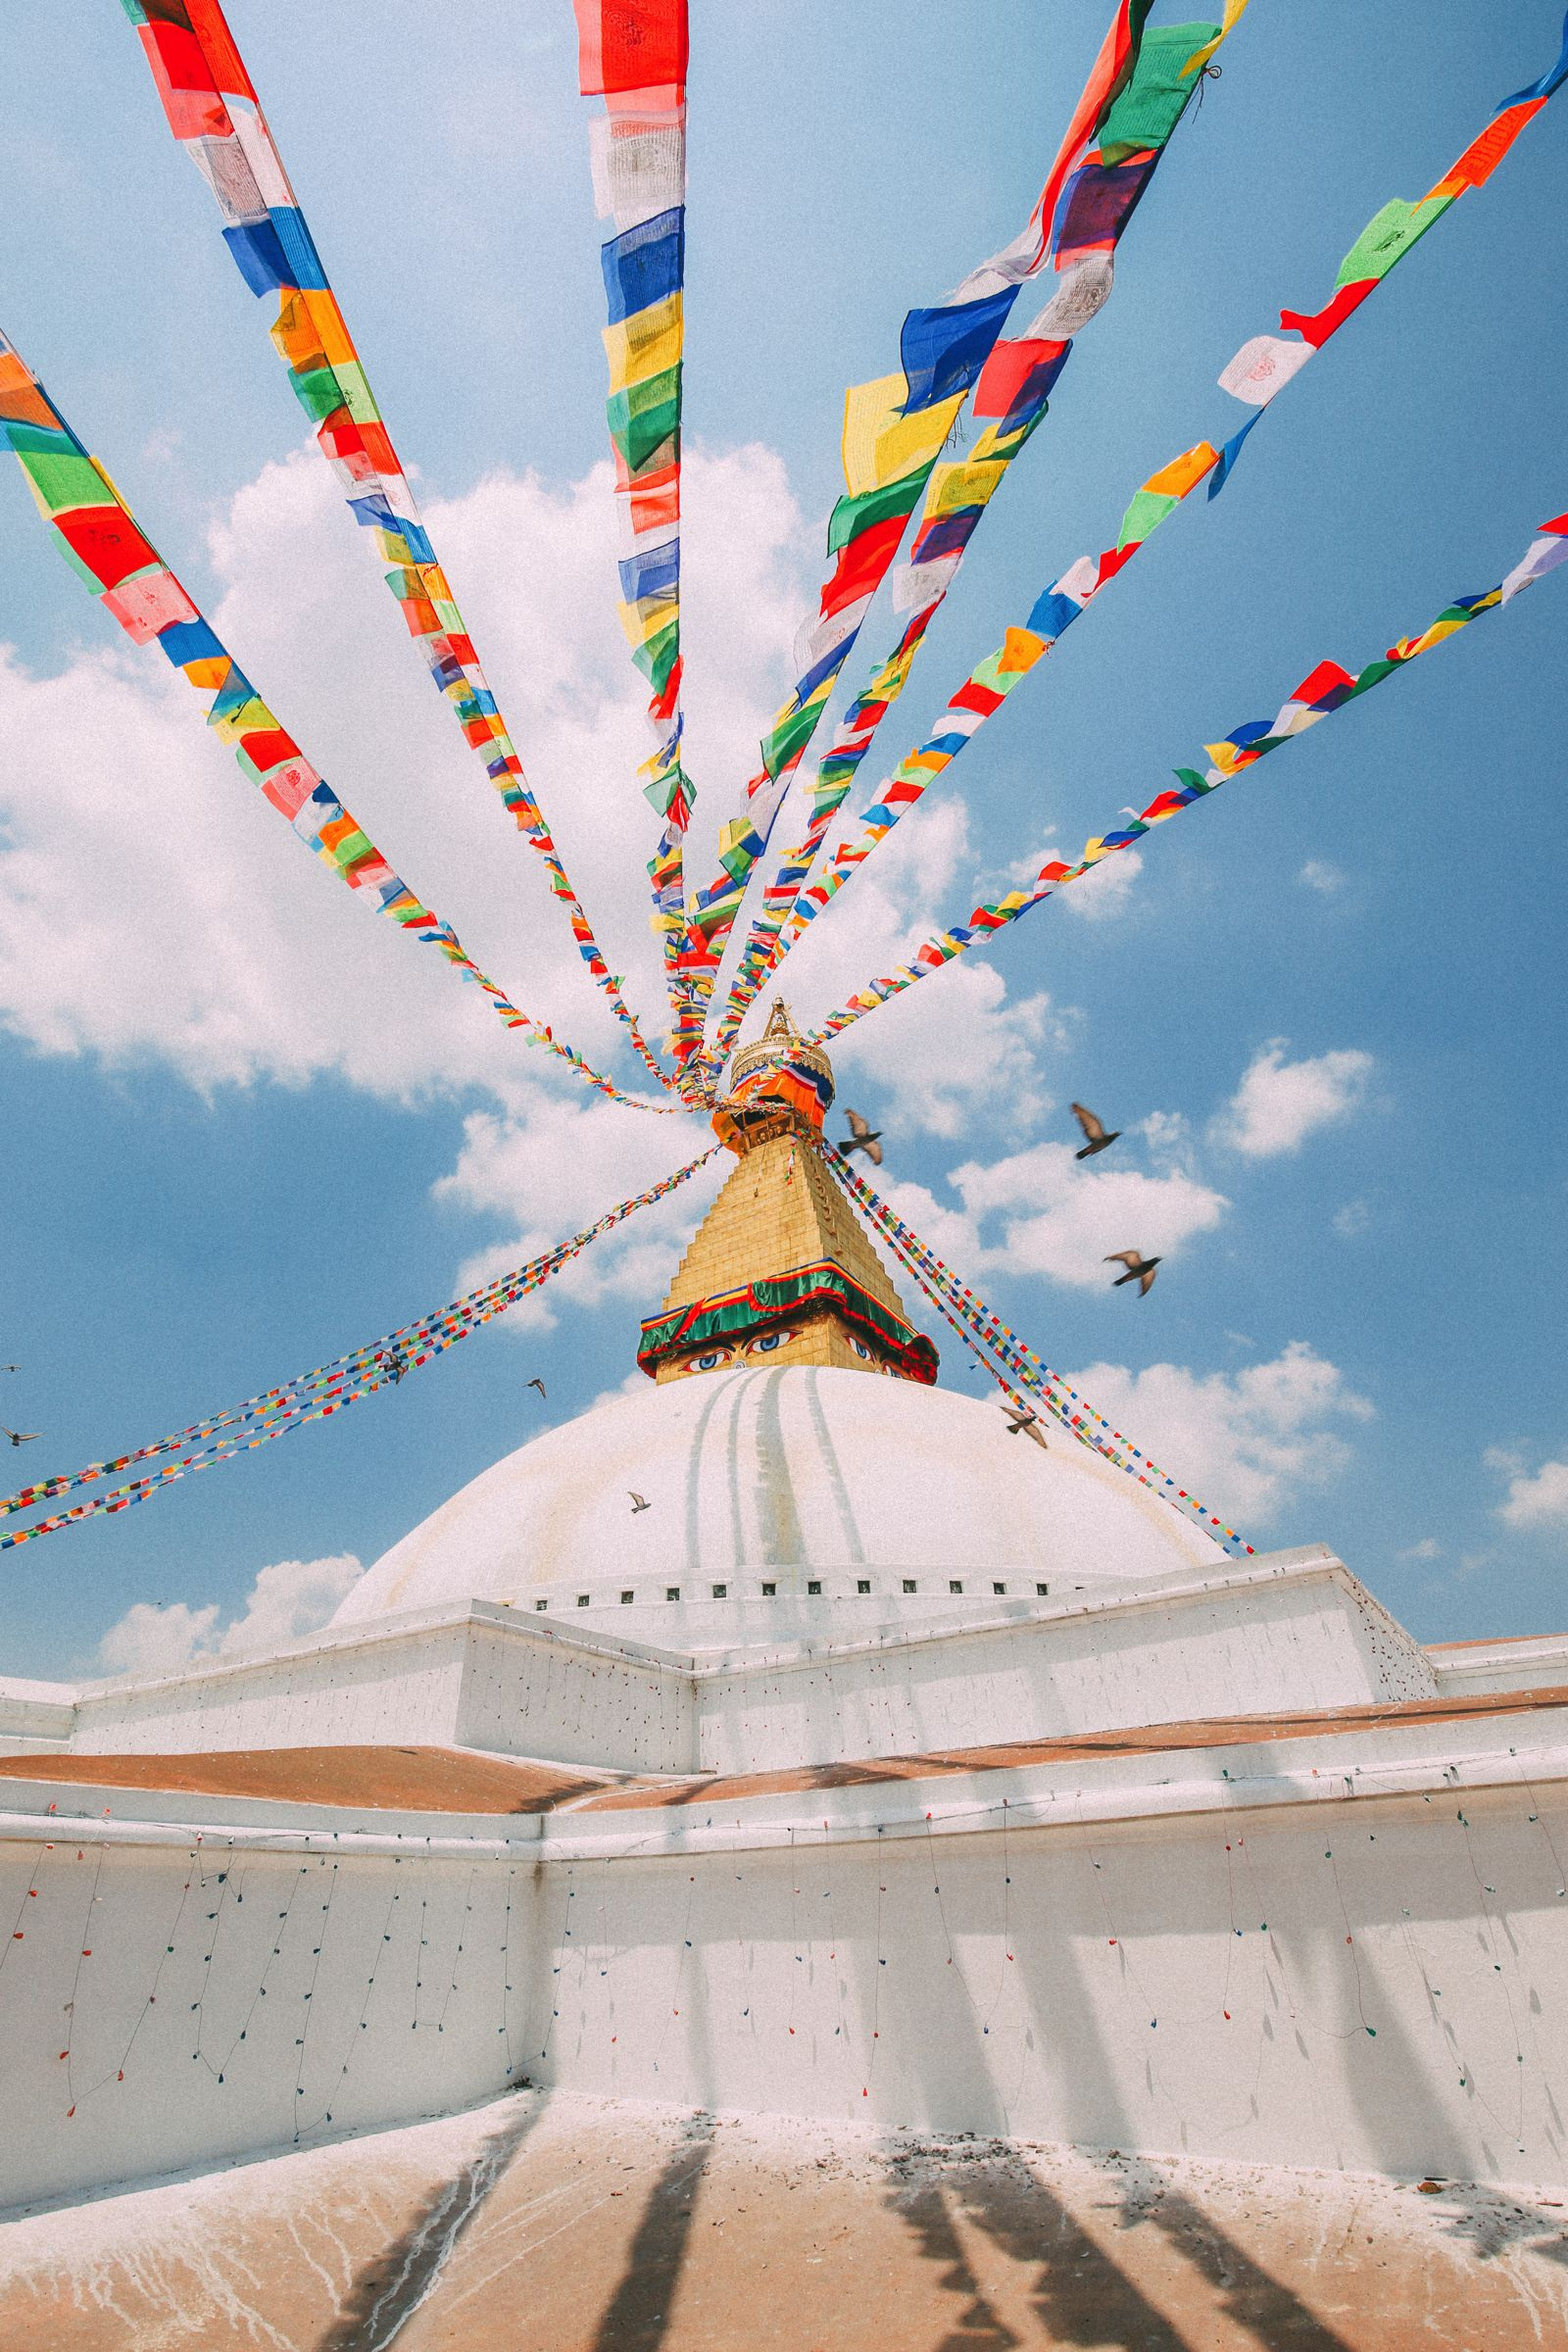 The UNESCO World Heritage Site Of Boudhanath Stupa In Kathmandu, Nepal (14)